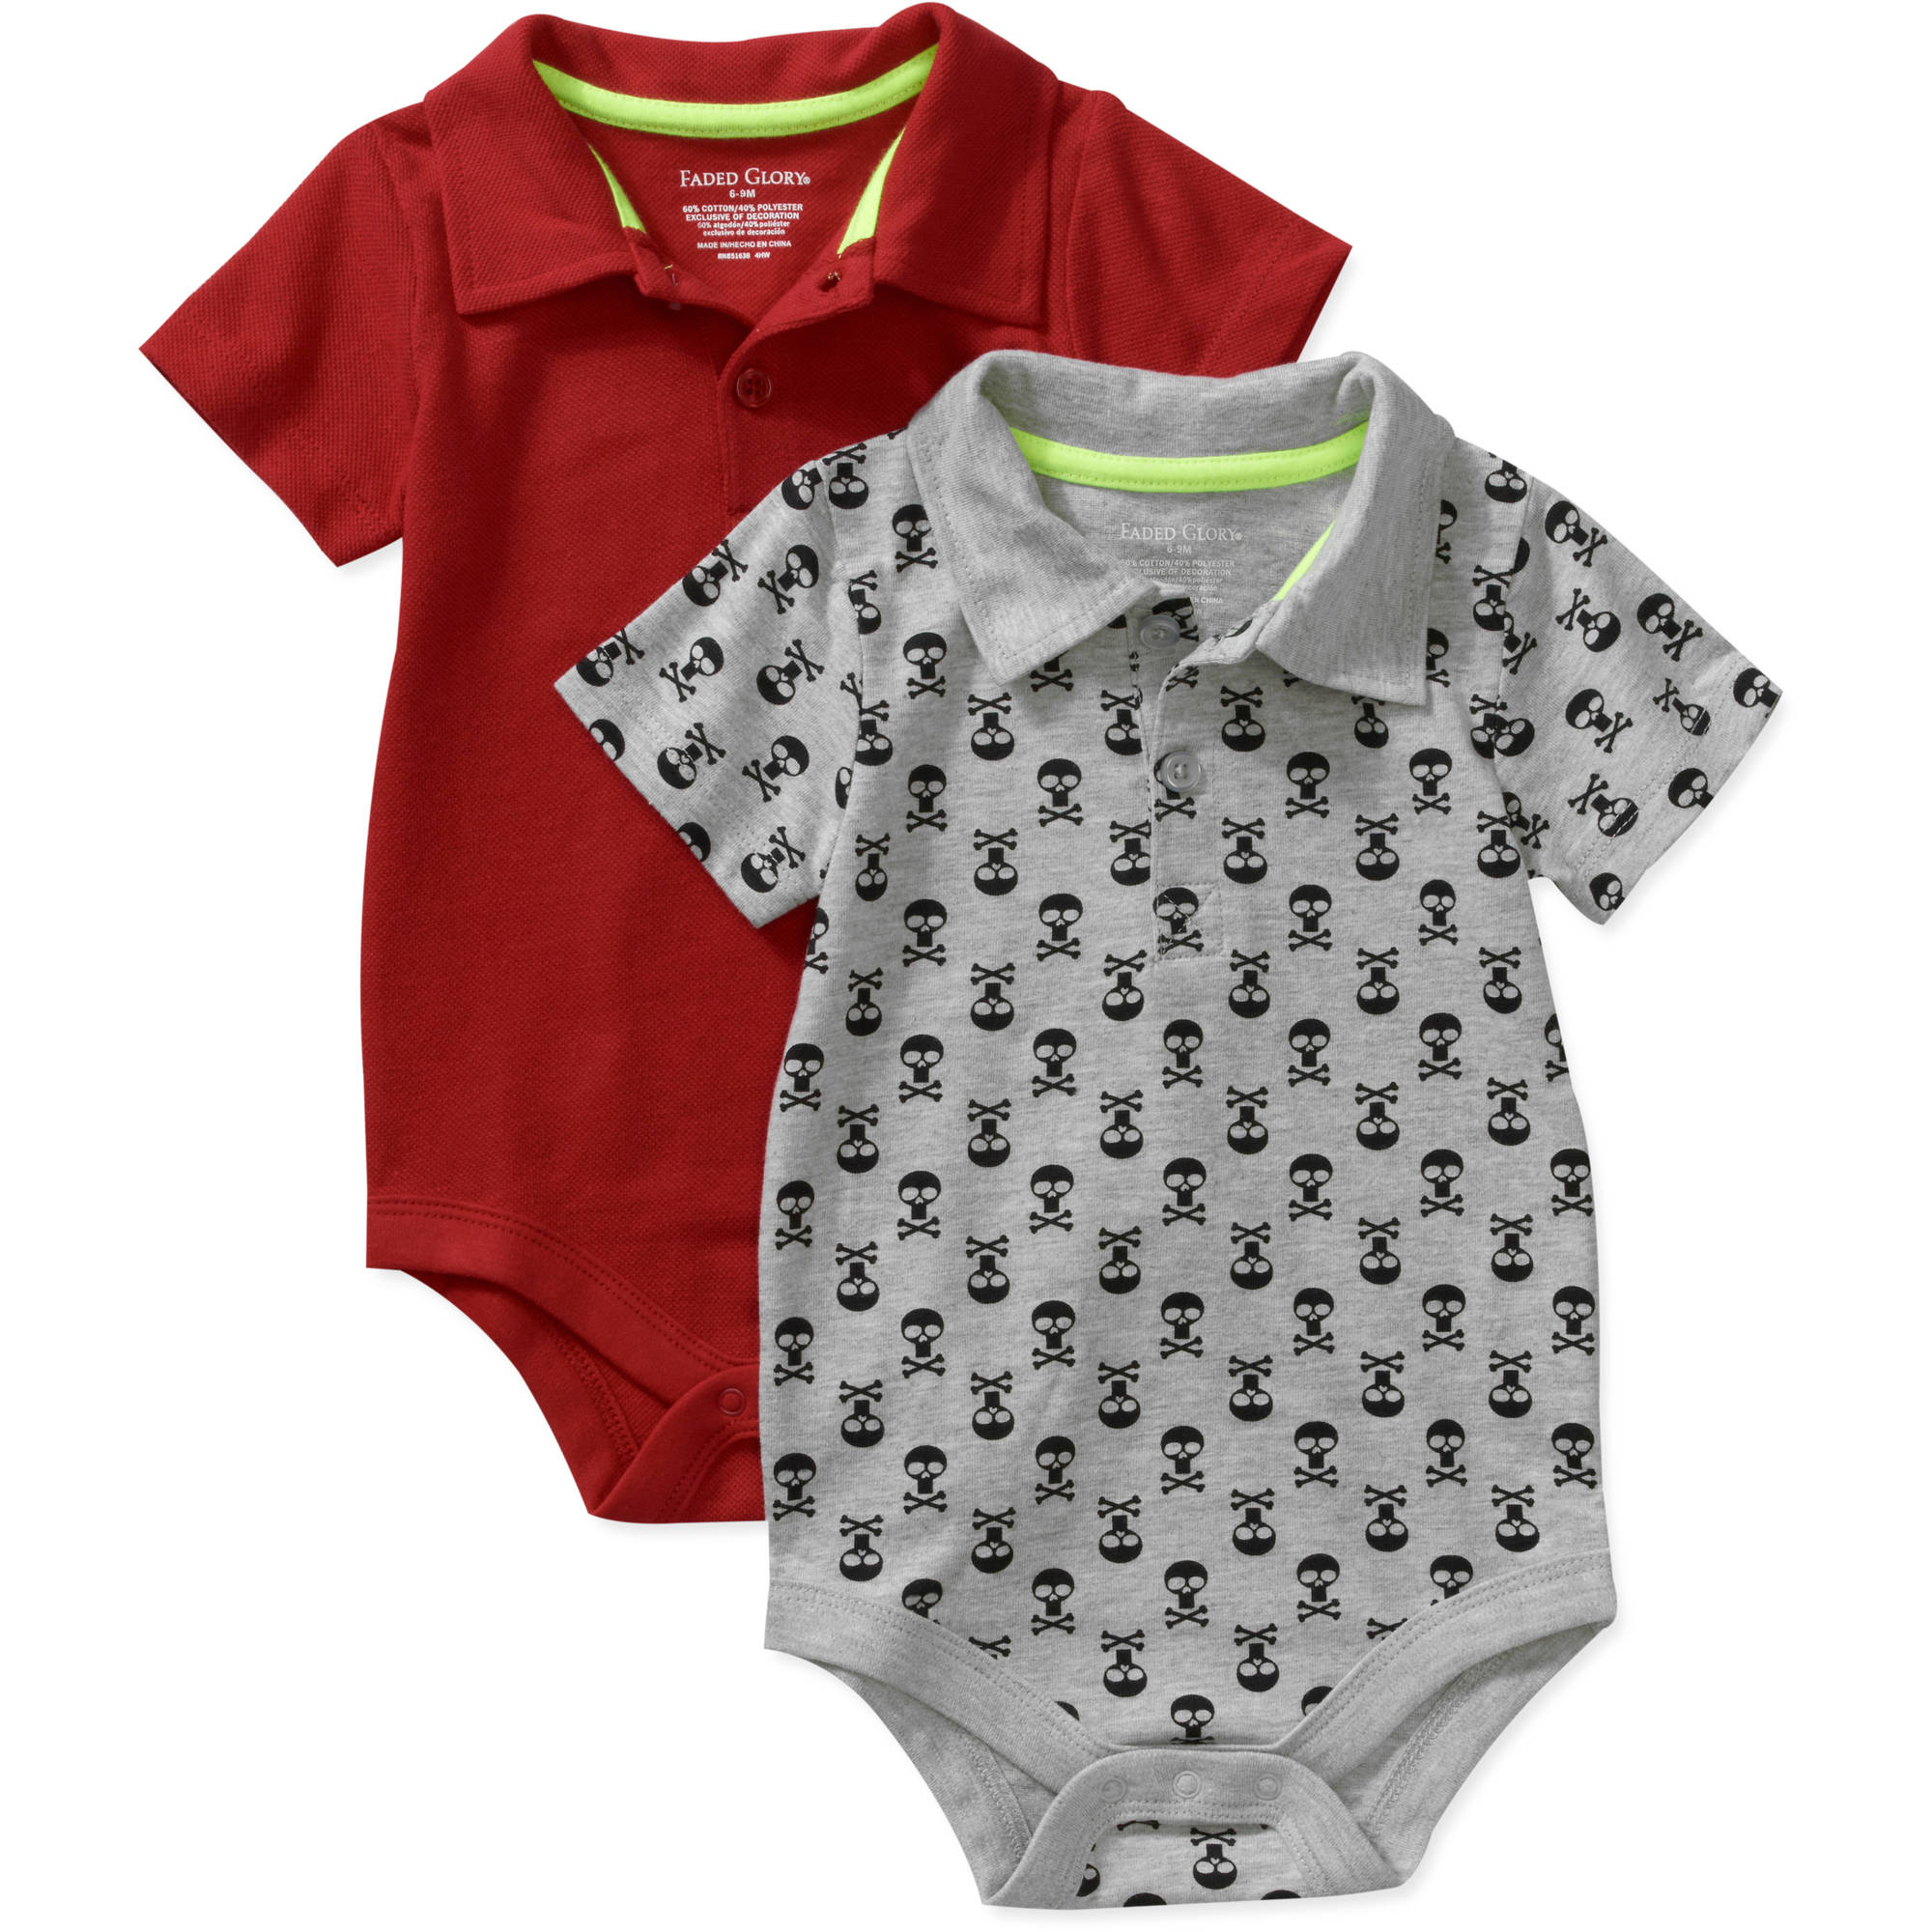 Faded Glory Newborn Boys' 2 Pack Polo Creeper Set